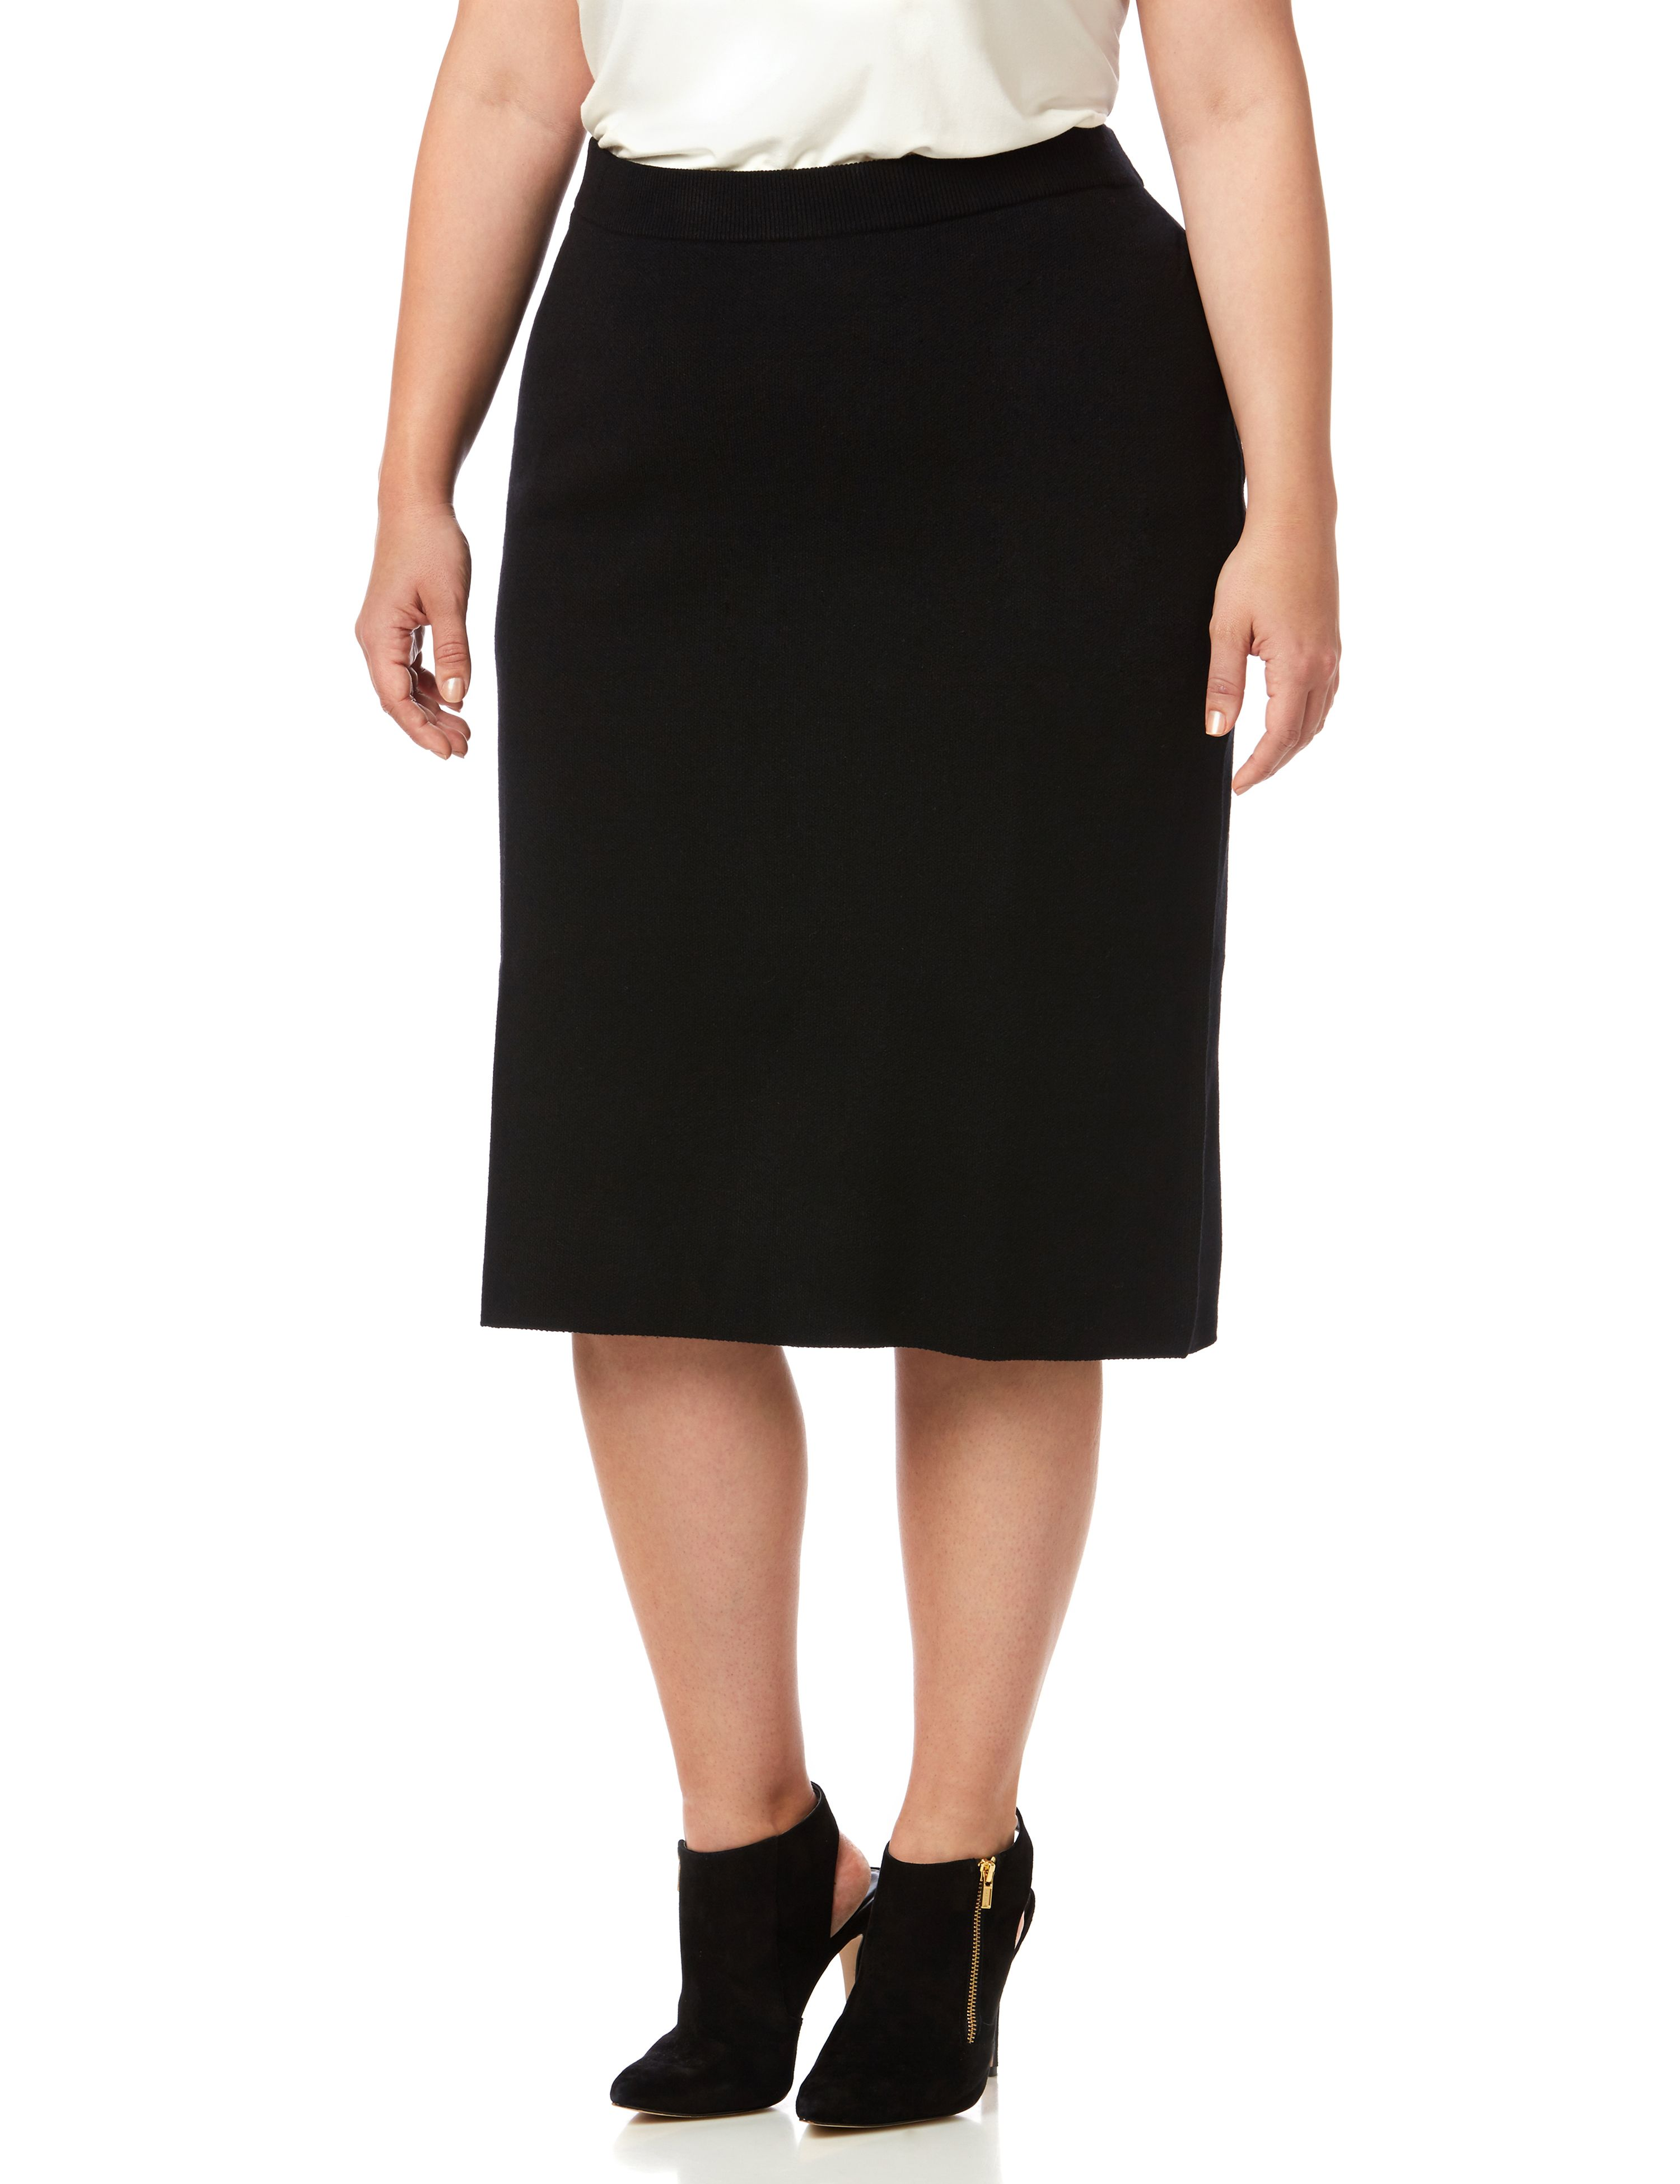 Black Label Sweater Skirt 1087455 Pull on sweater skirt - ATR MP-300091058